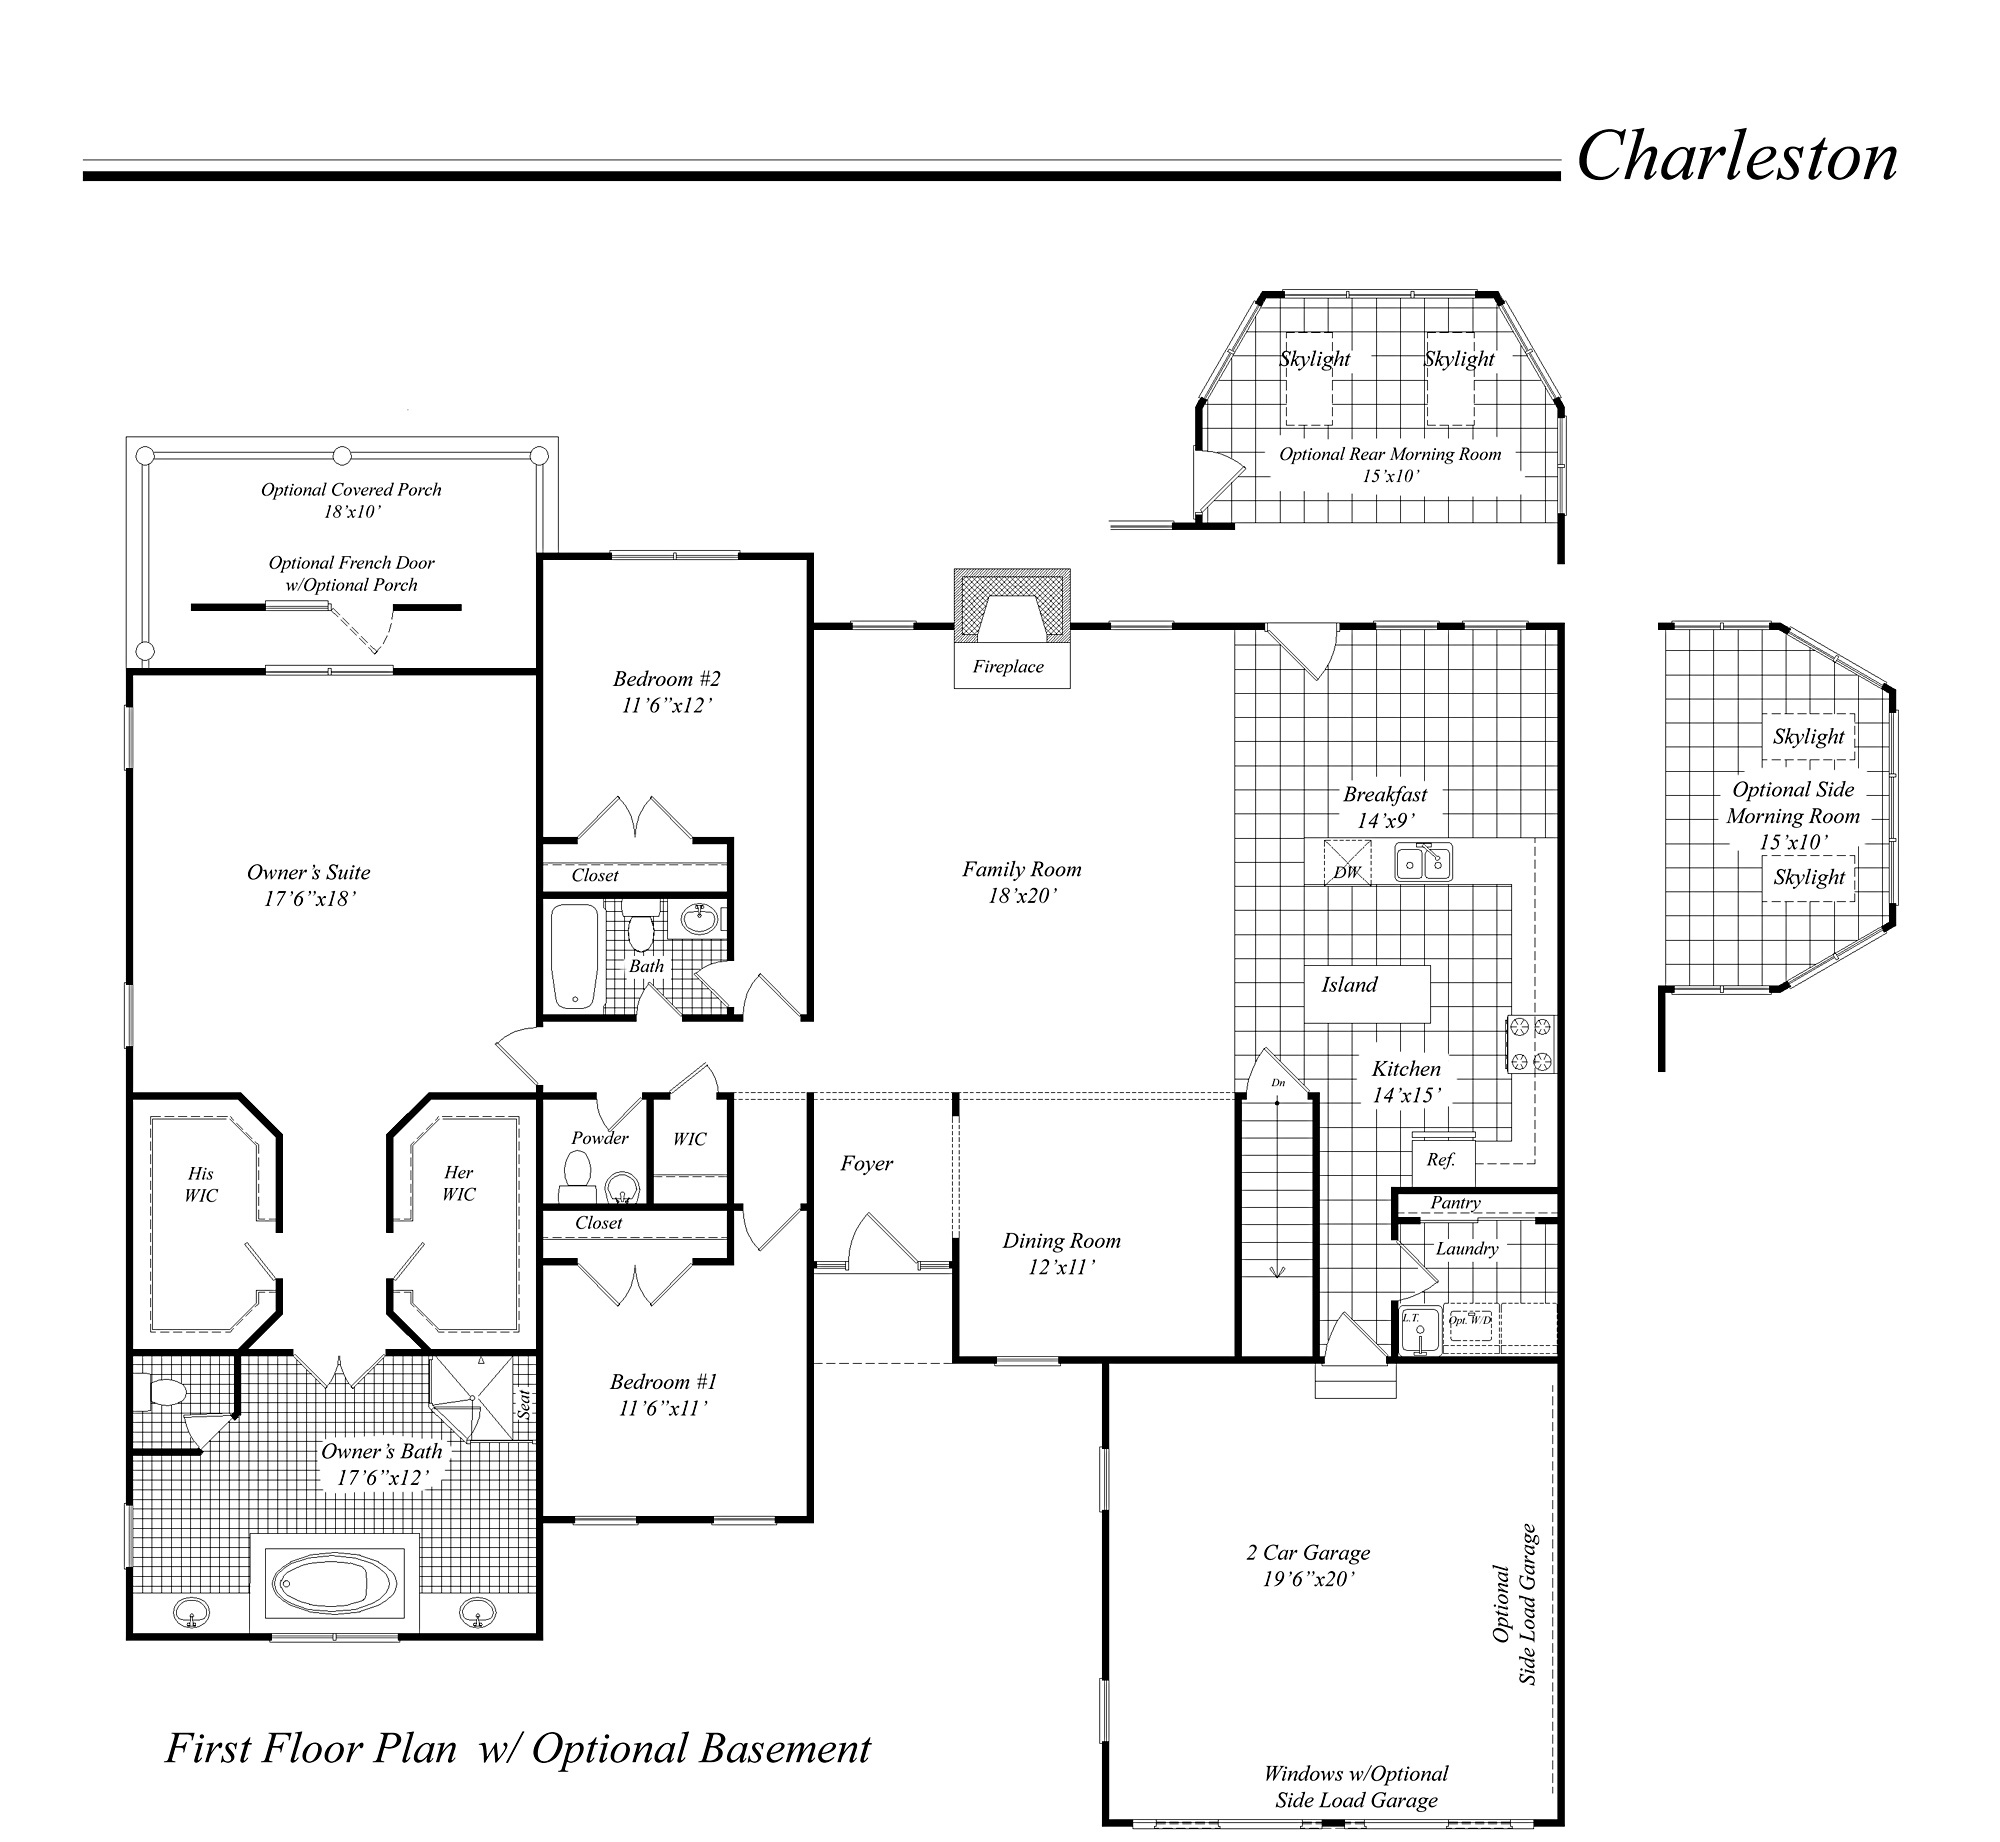 house illustration - home rendering - classic homes floor plan